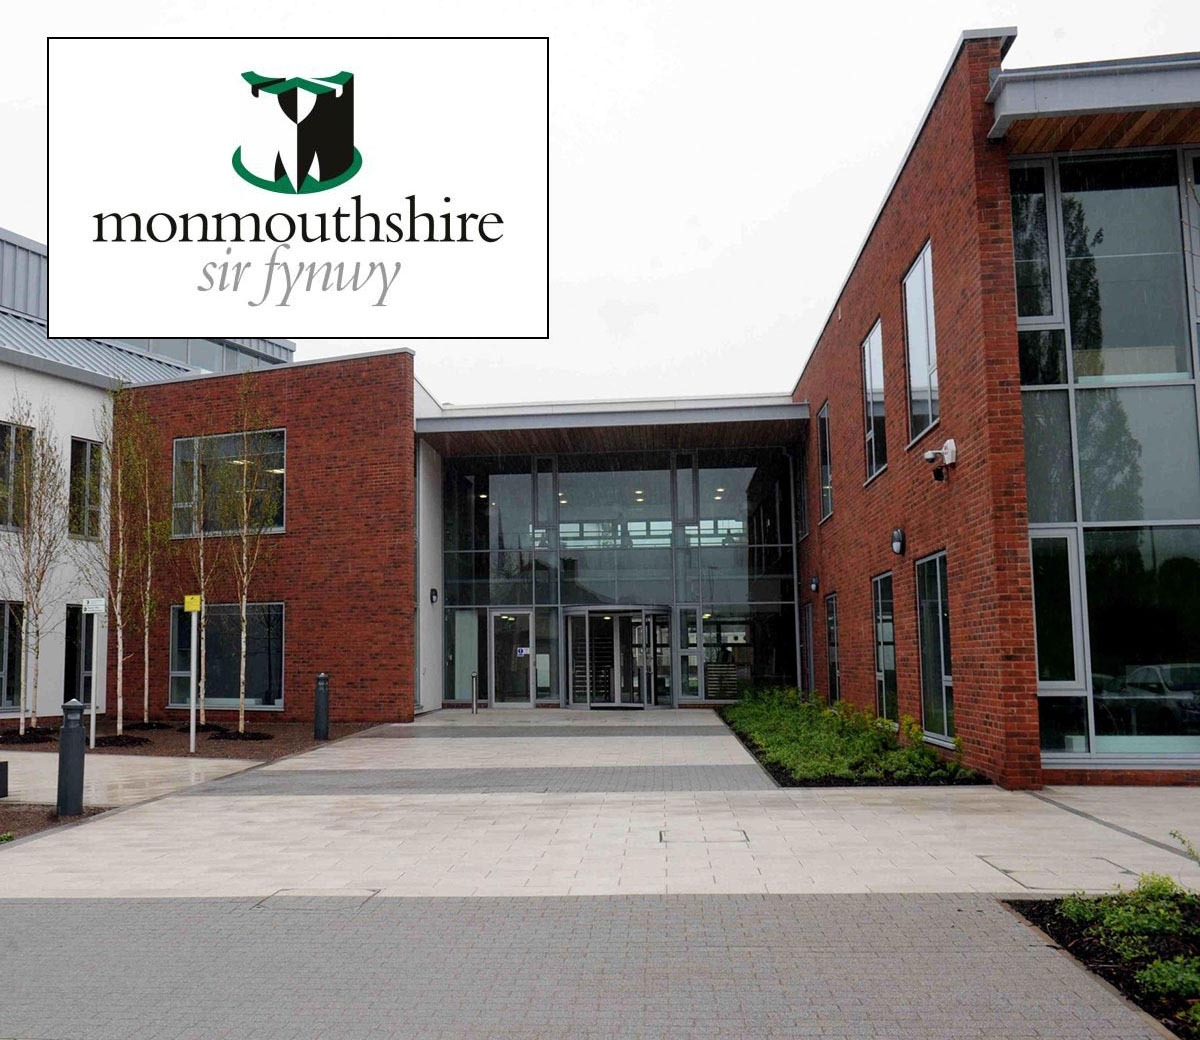 Monmouthshire council.